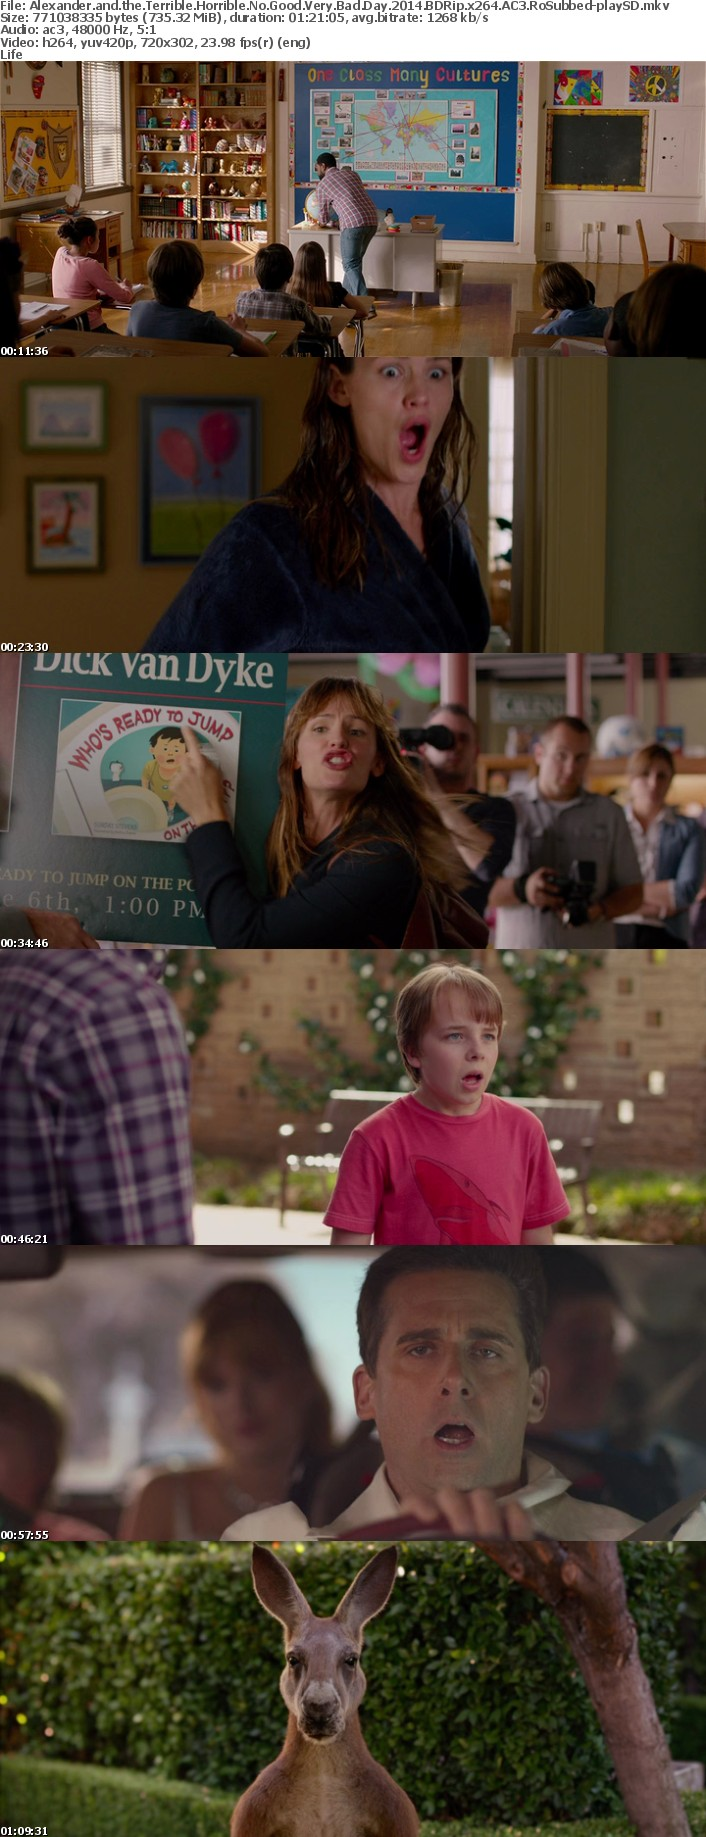 Alexander and the Terrible Horrible No Good Very Bad Day 2014 BDRip x264 AC3 RoSubbed-playSD